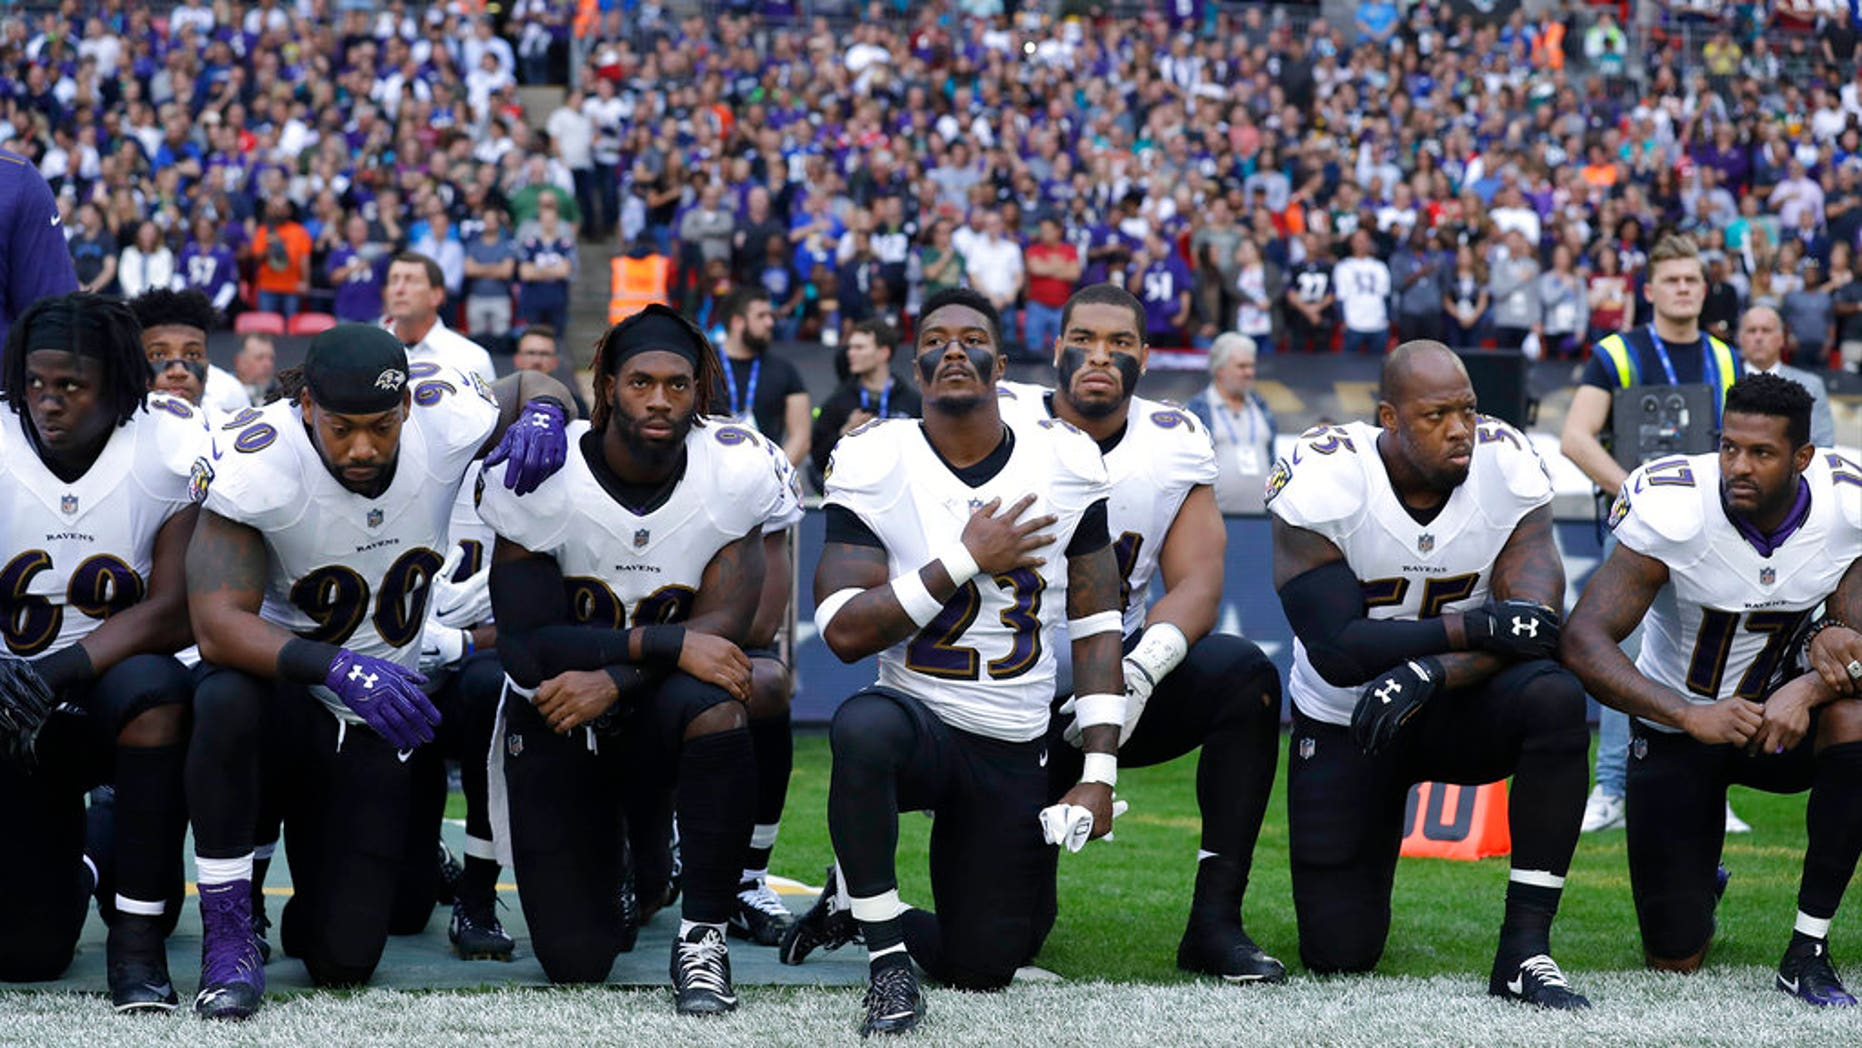 Baltimore Ravens players kneel down during the playing of the U.S. national anthem before an NFL football game against the Jacksonville Jaguars at Wembley Stadium in London, Sunday Sept. 24, 2017. (AP Photo/Matt Dunham)